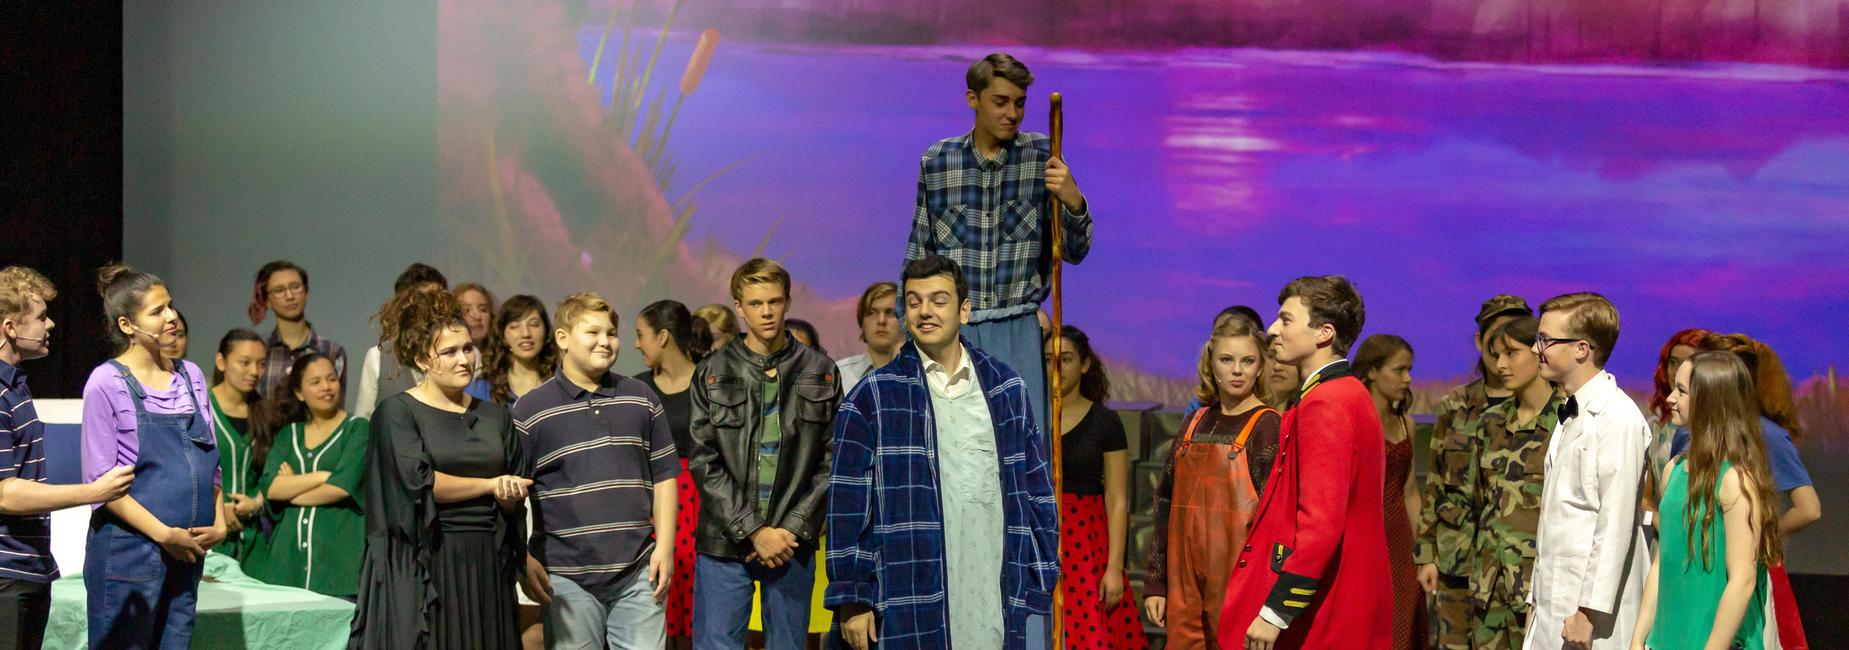 Cast of musical Big Fish performing onstage